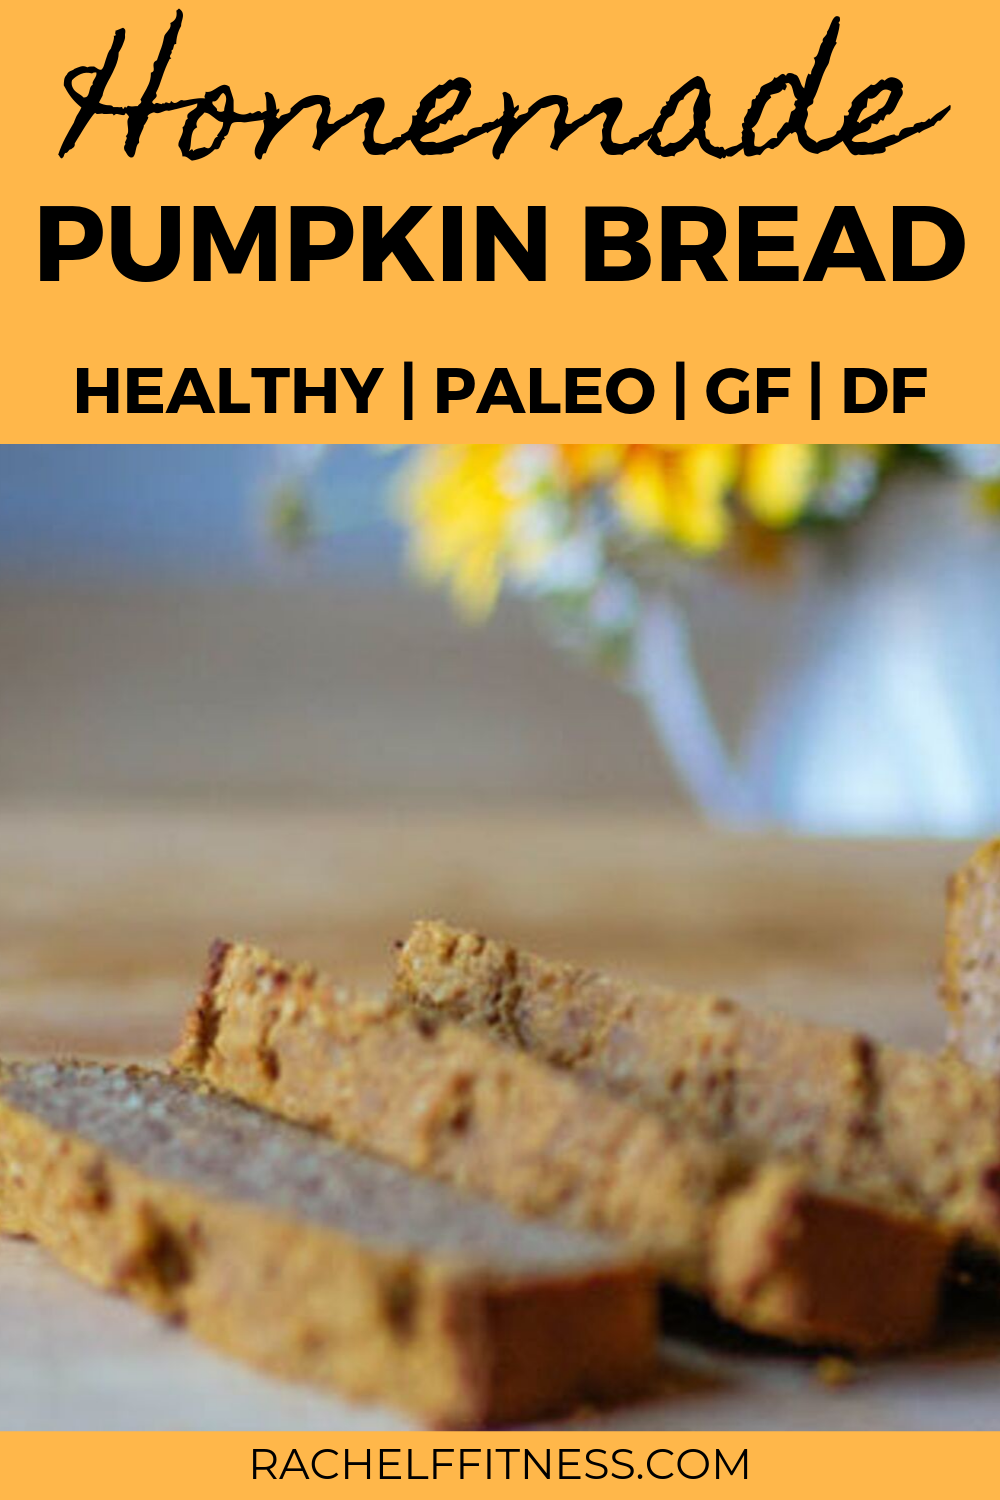 Paleo Gluten Free Pumpkin Bread Recipe